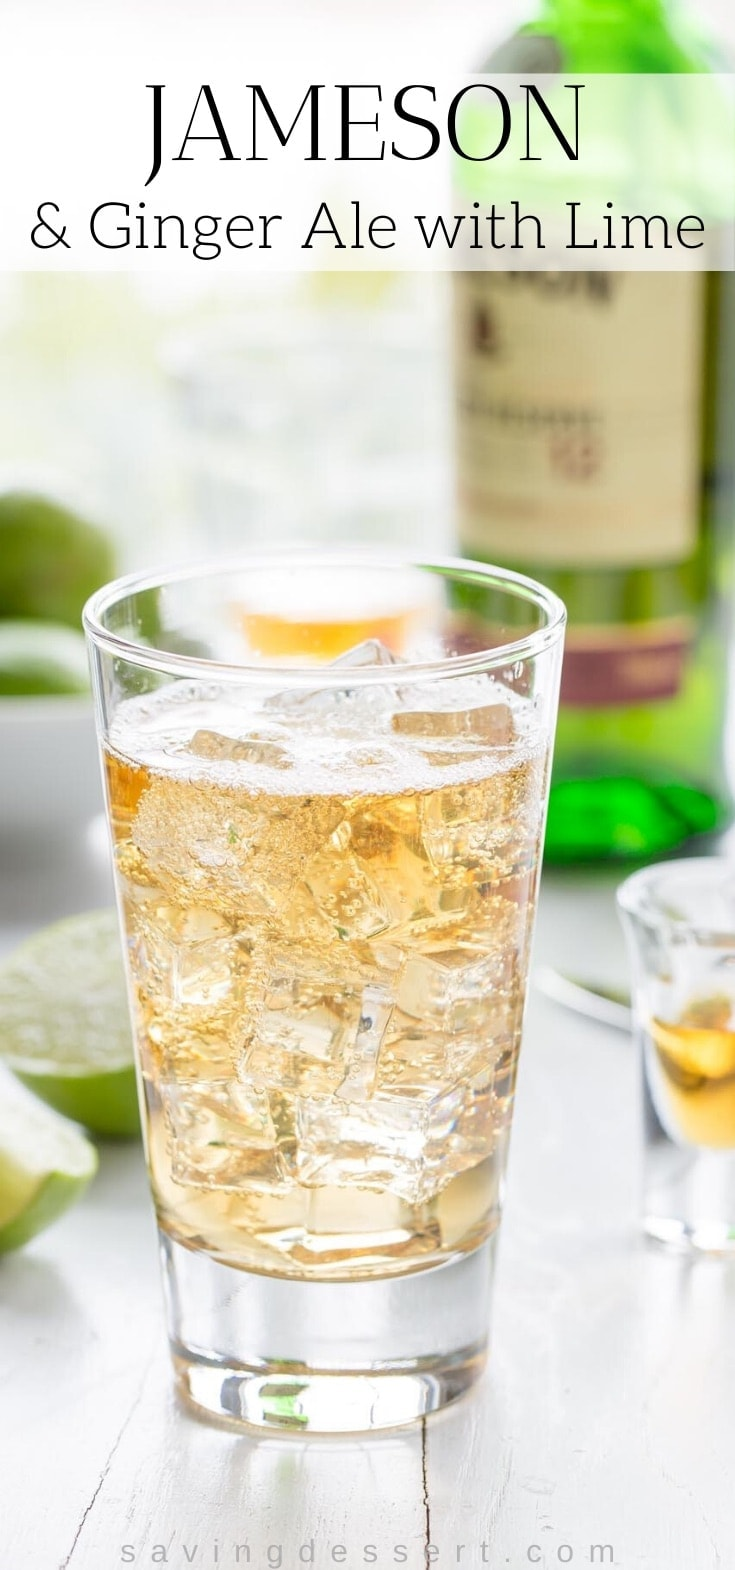 A tall glass with ice, Jameson whiskey and ginger ale with a lime wedge